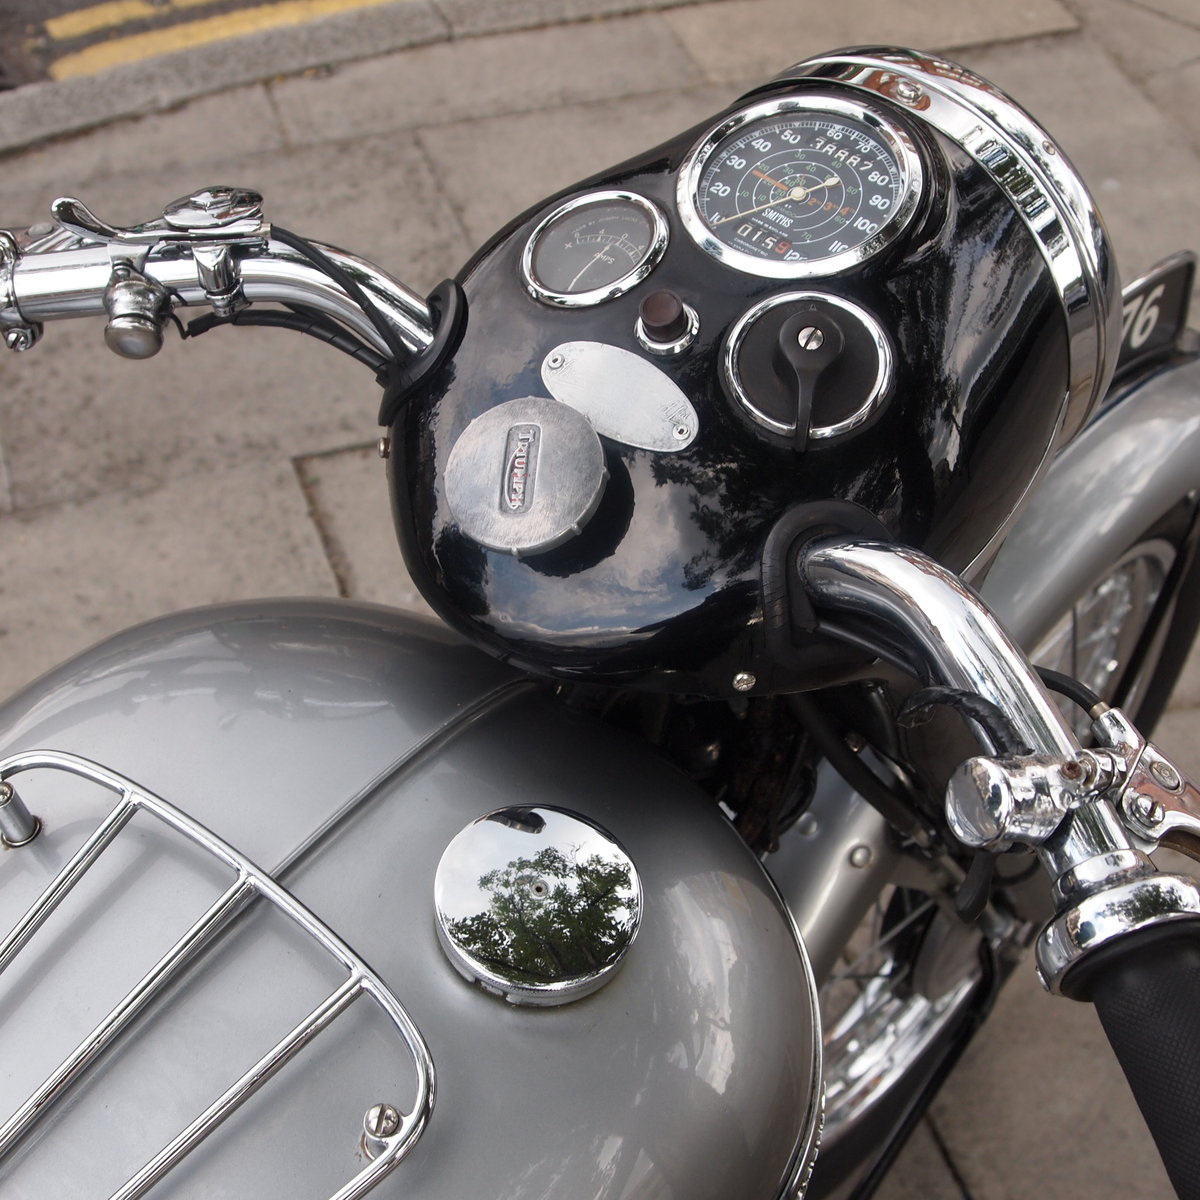 1952 T100 Tiger 499cc Sprung Hub, Lovely Bike You Must See. For Sale (picture 4 of 6)